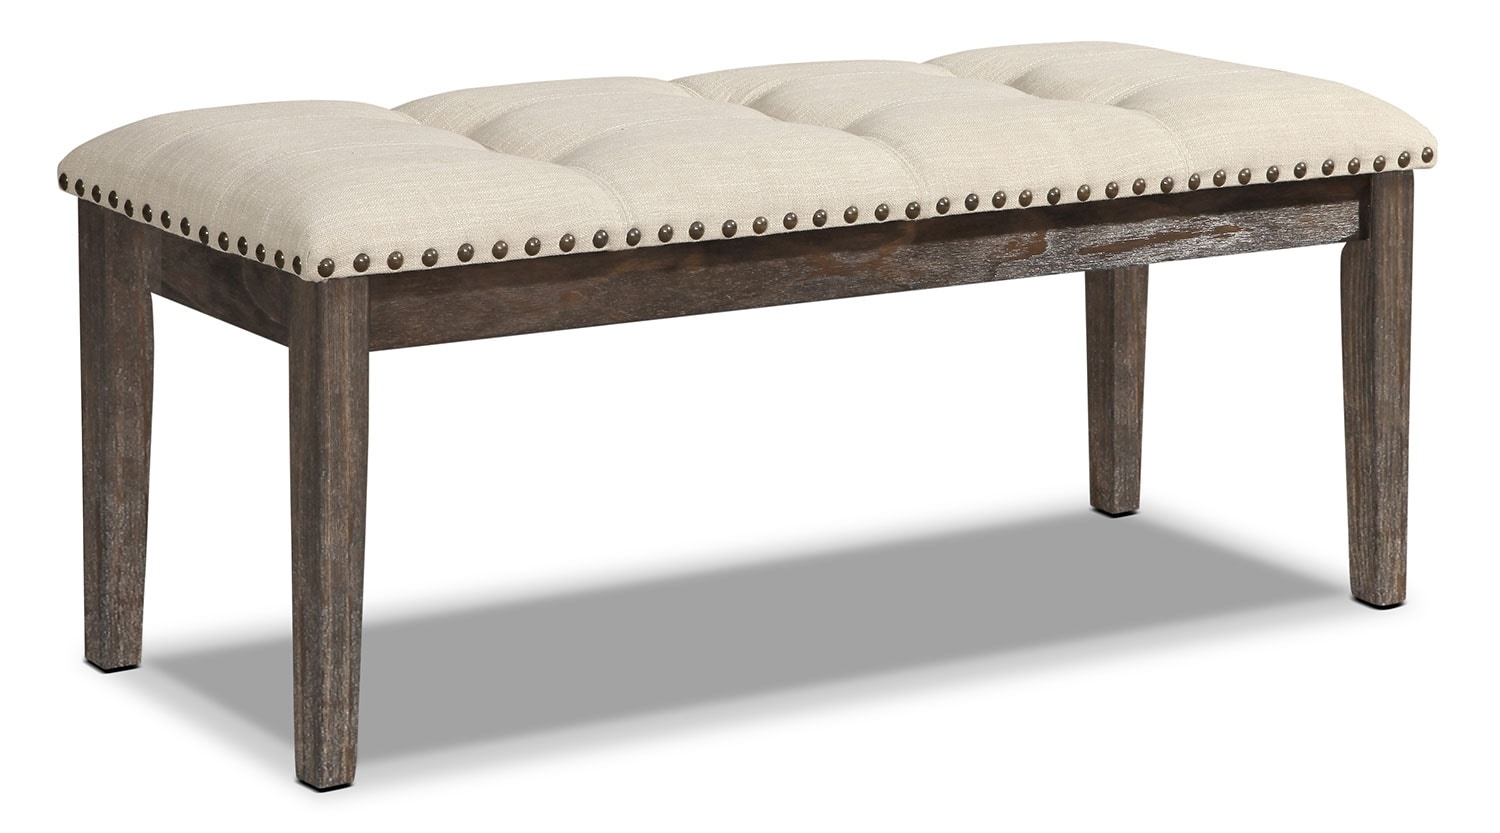 Aldo Dining Bench The Brick : 403682 from www.thebrick.com size 1500 x 833 jpeg 127kB